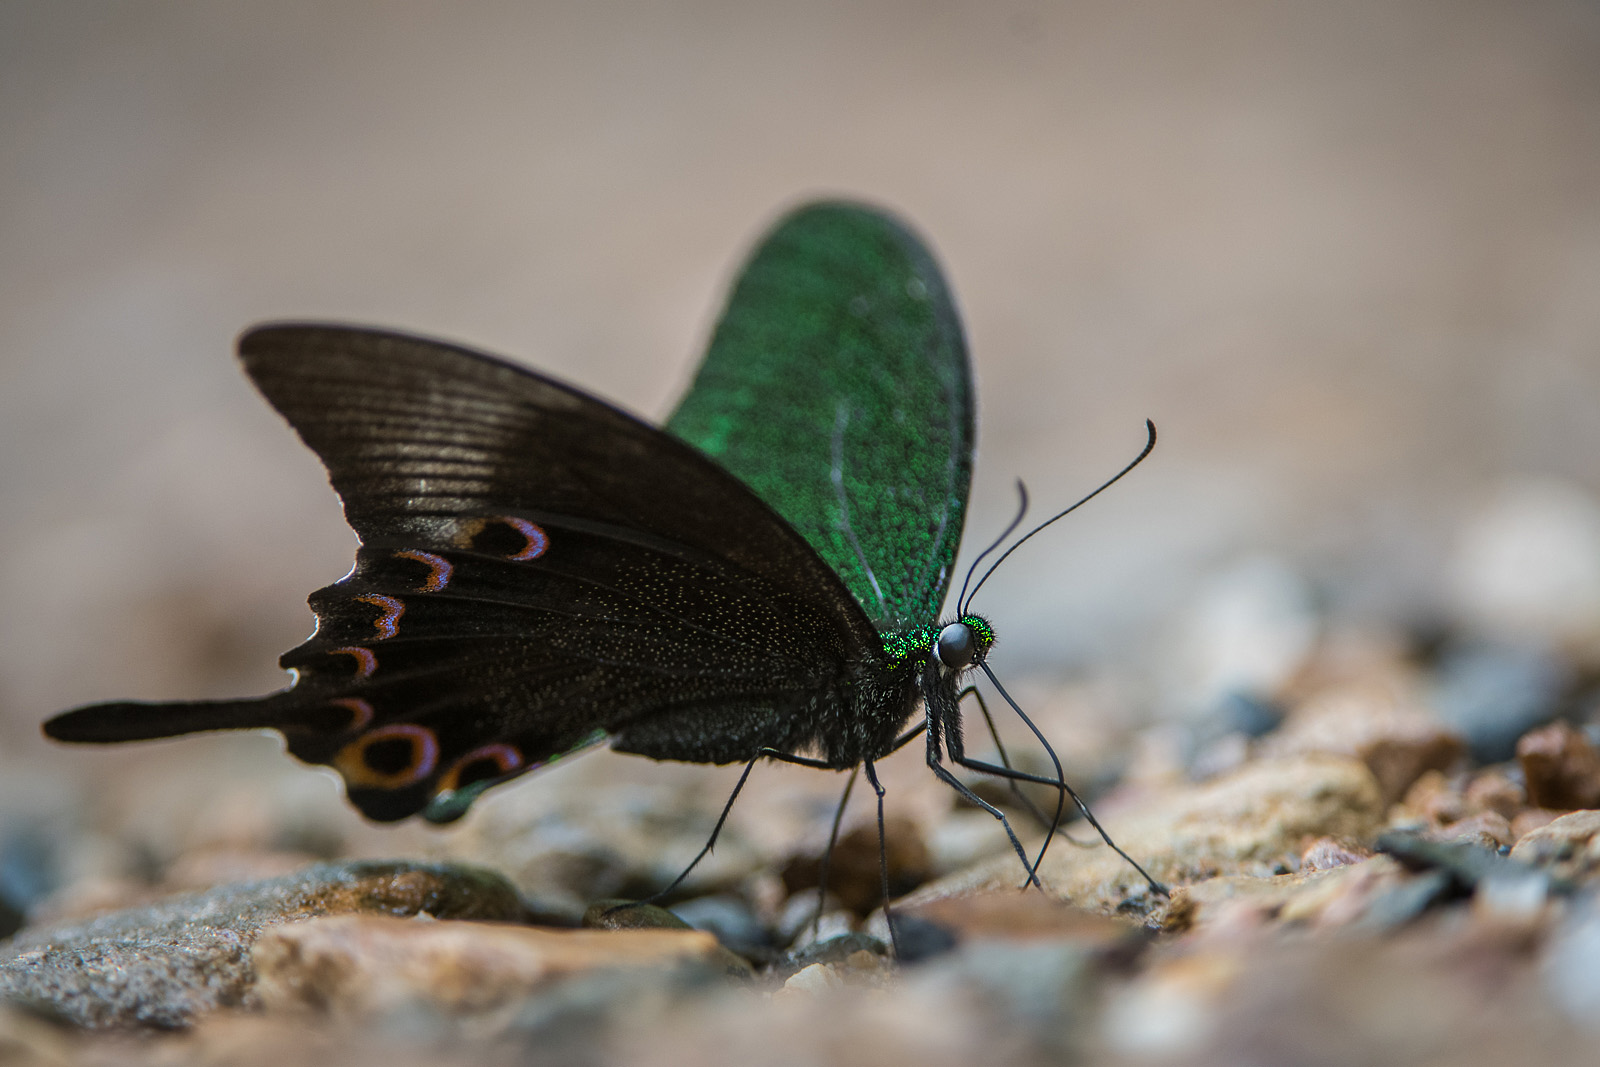 Paris Peacock Butterfly, Kaeng Krachan National Park, Thailand